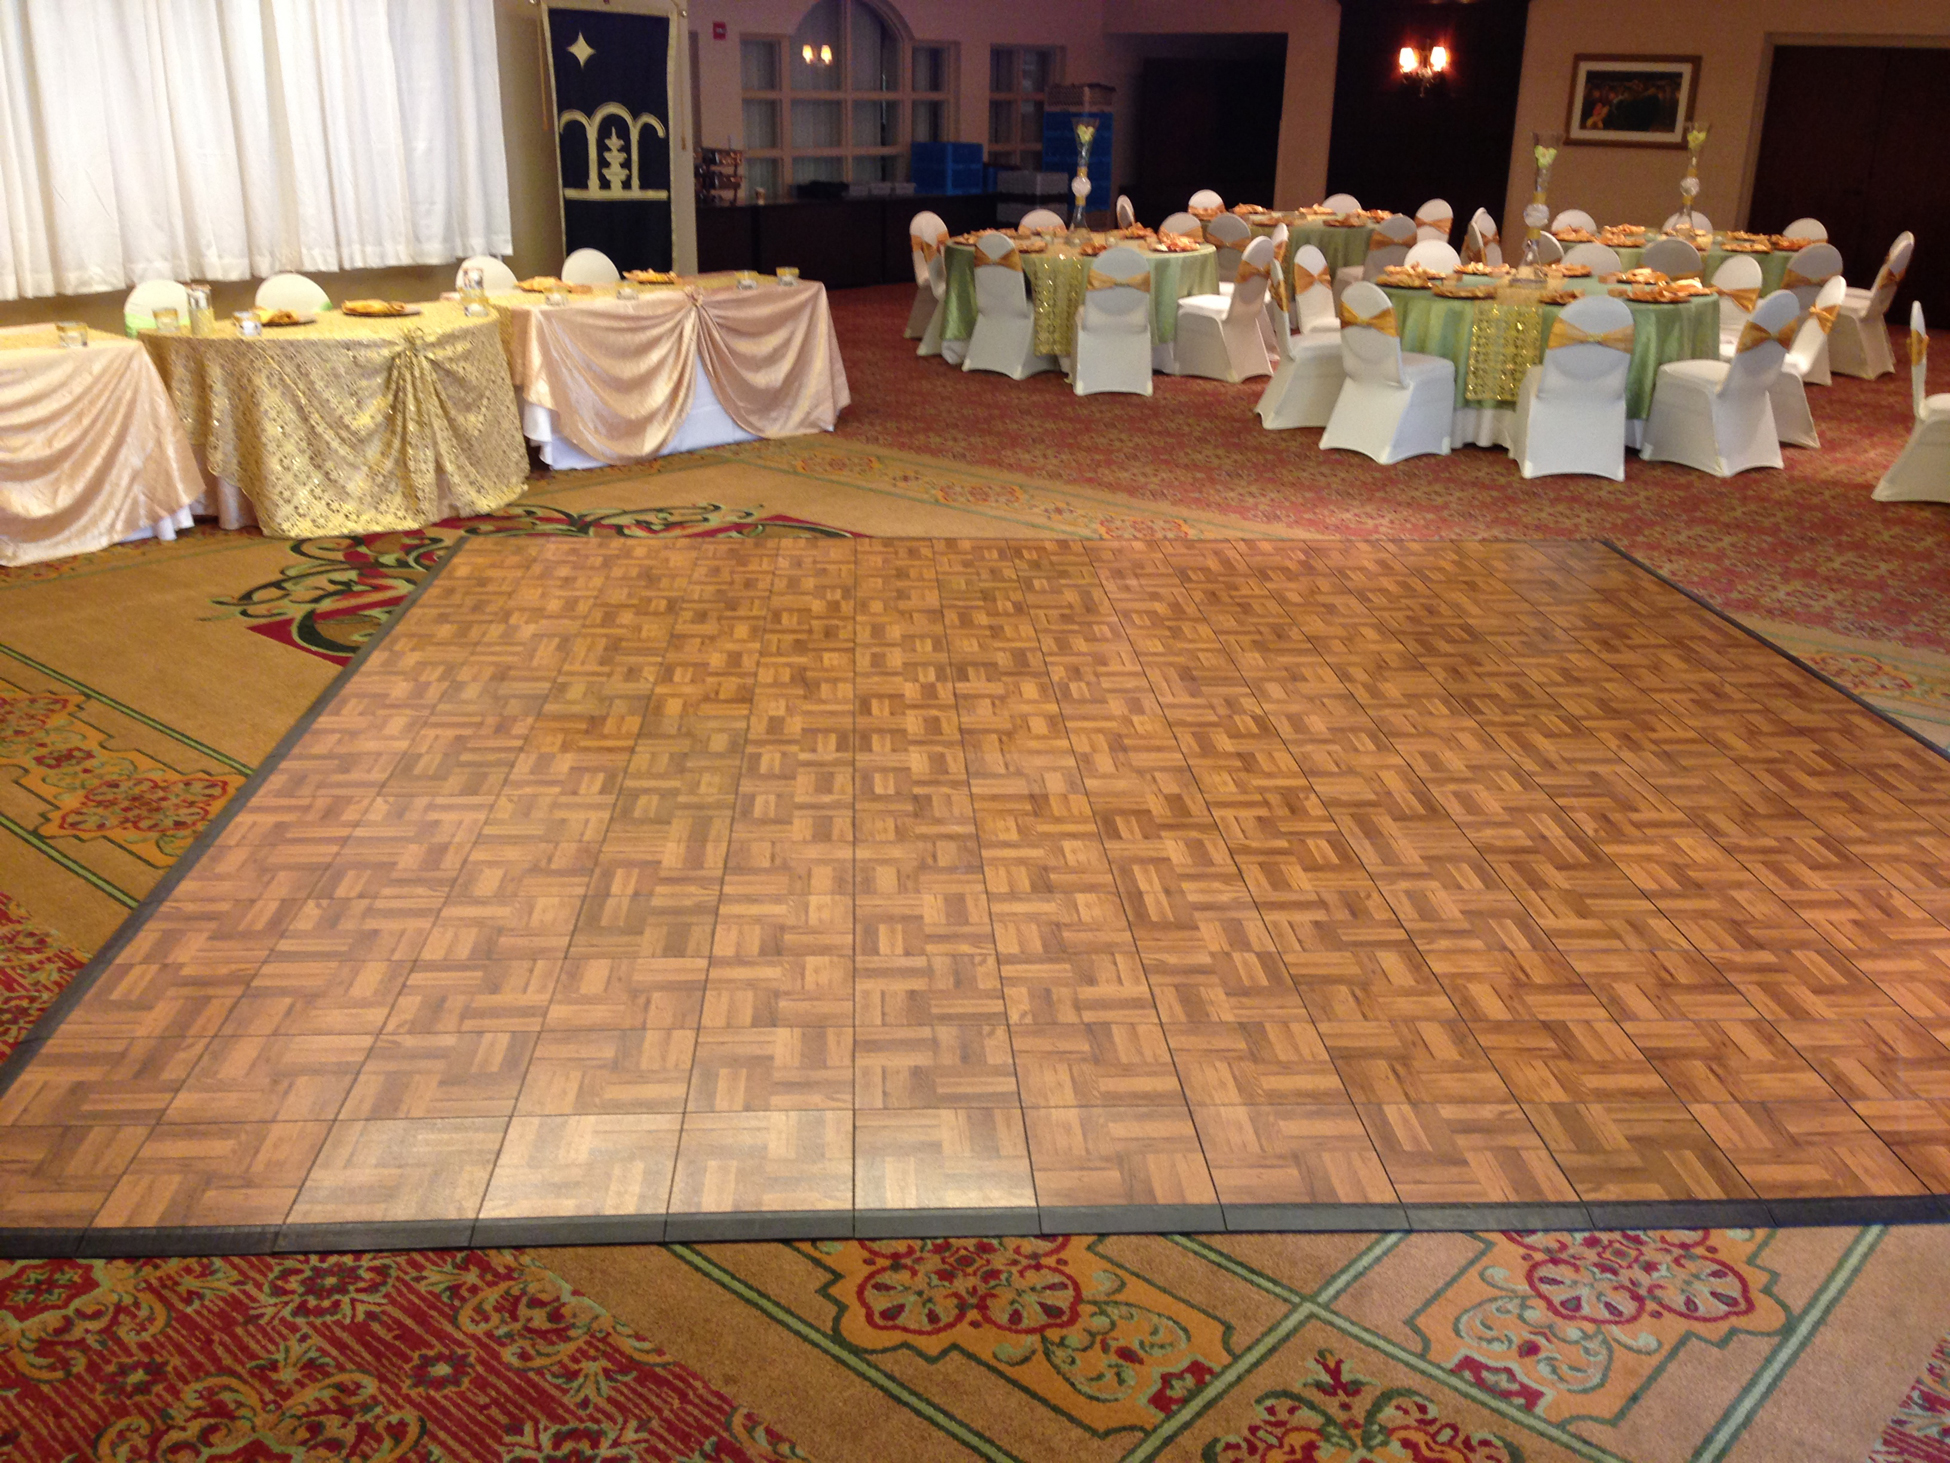 Diy rosco dance floor floors ballet studio marley sprung for Marley floor cost